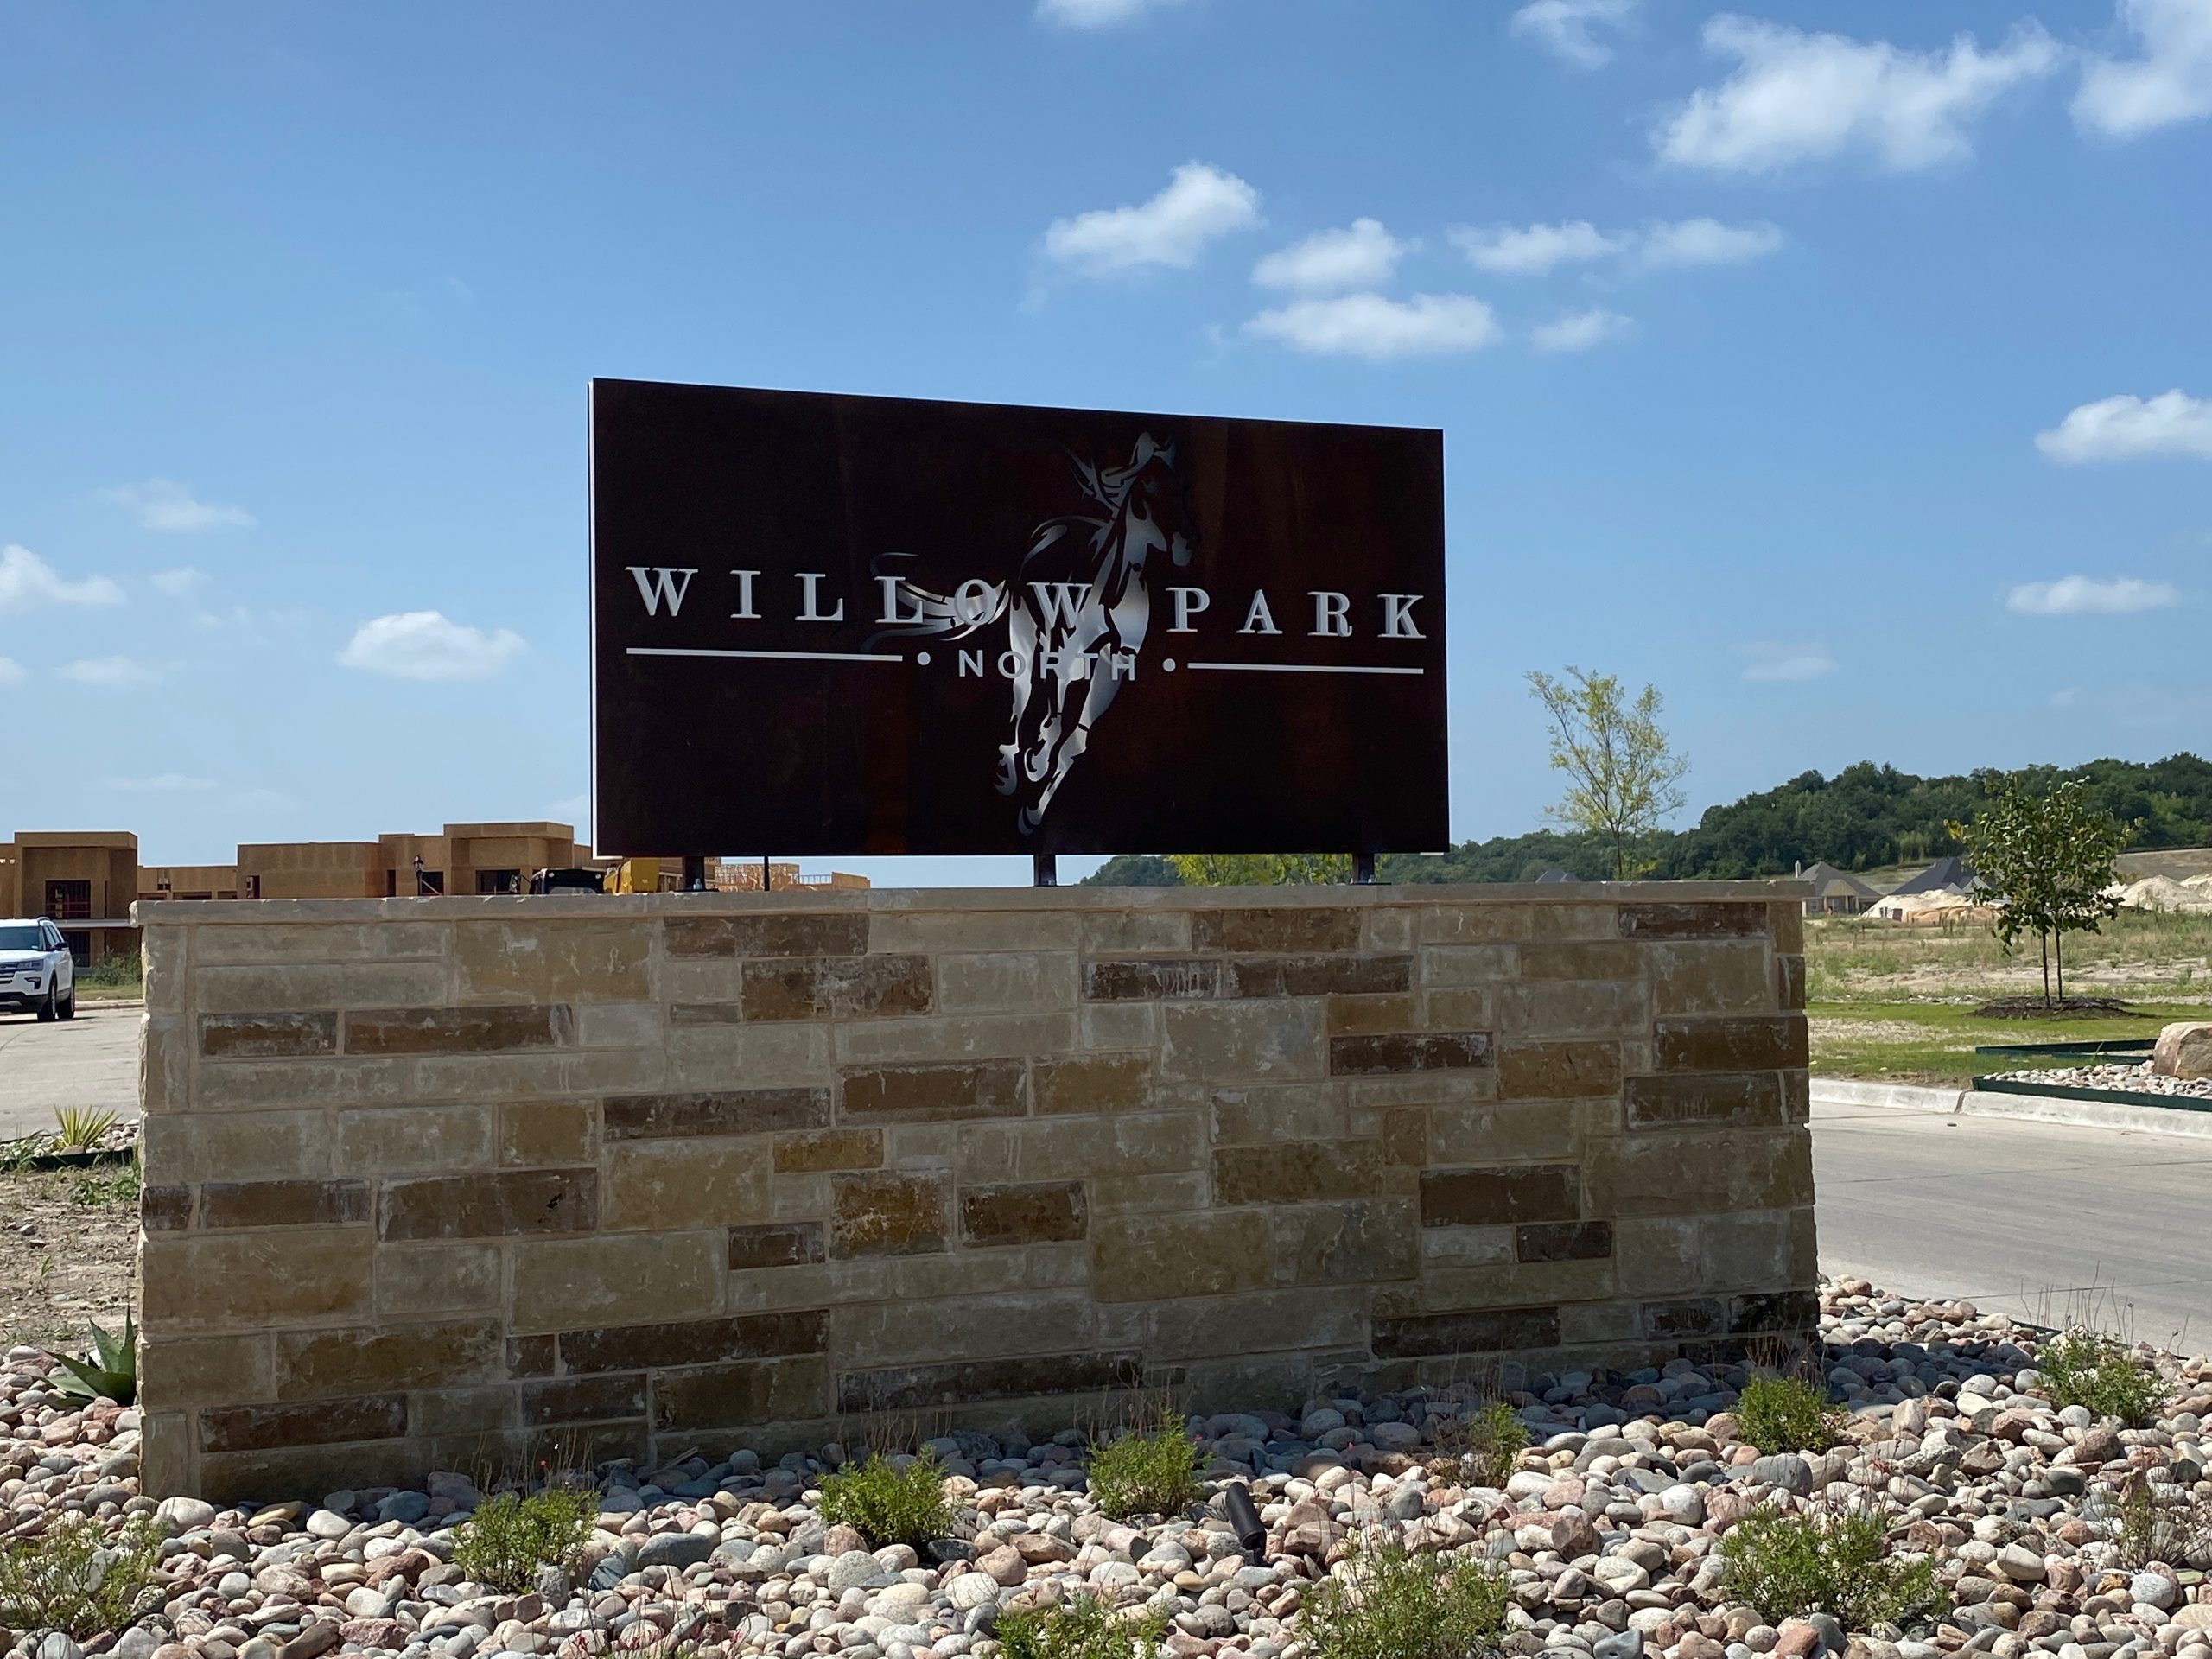 Willow Park North signage